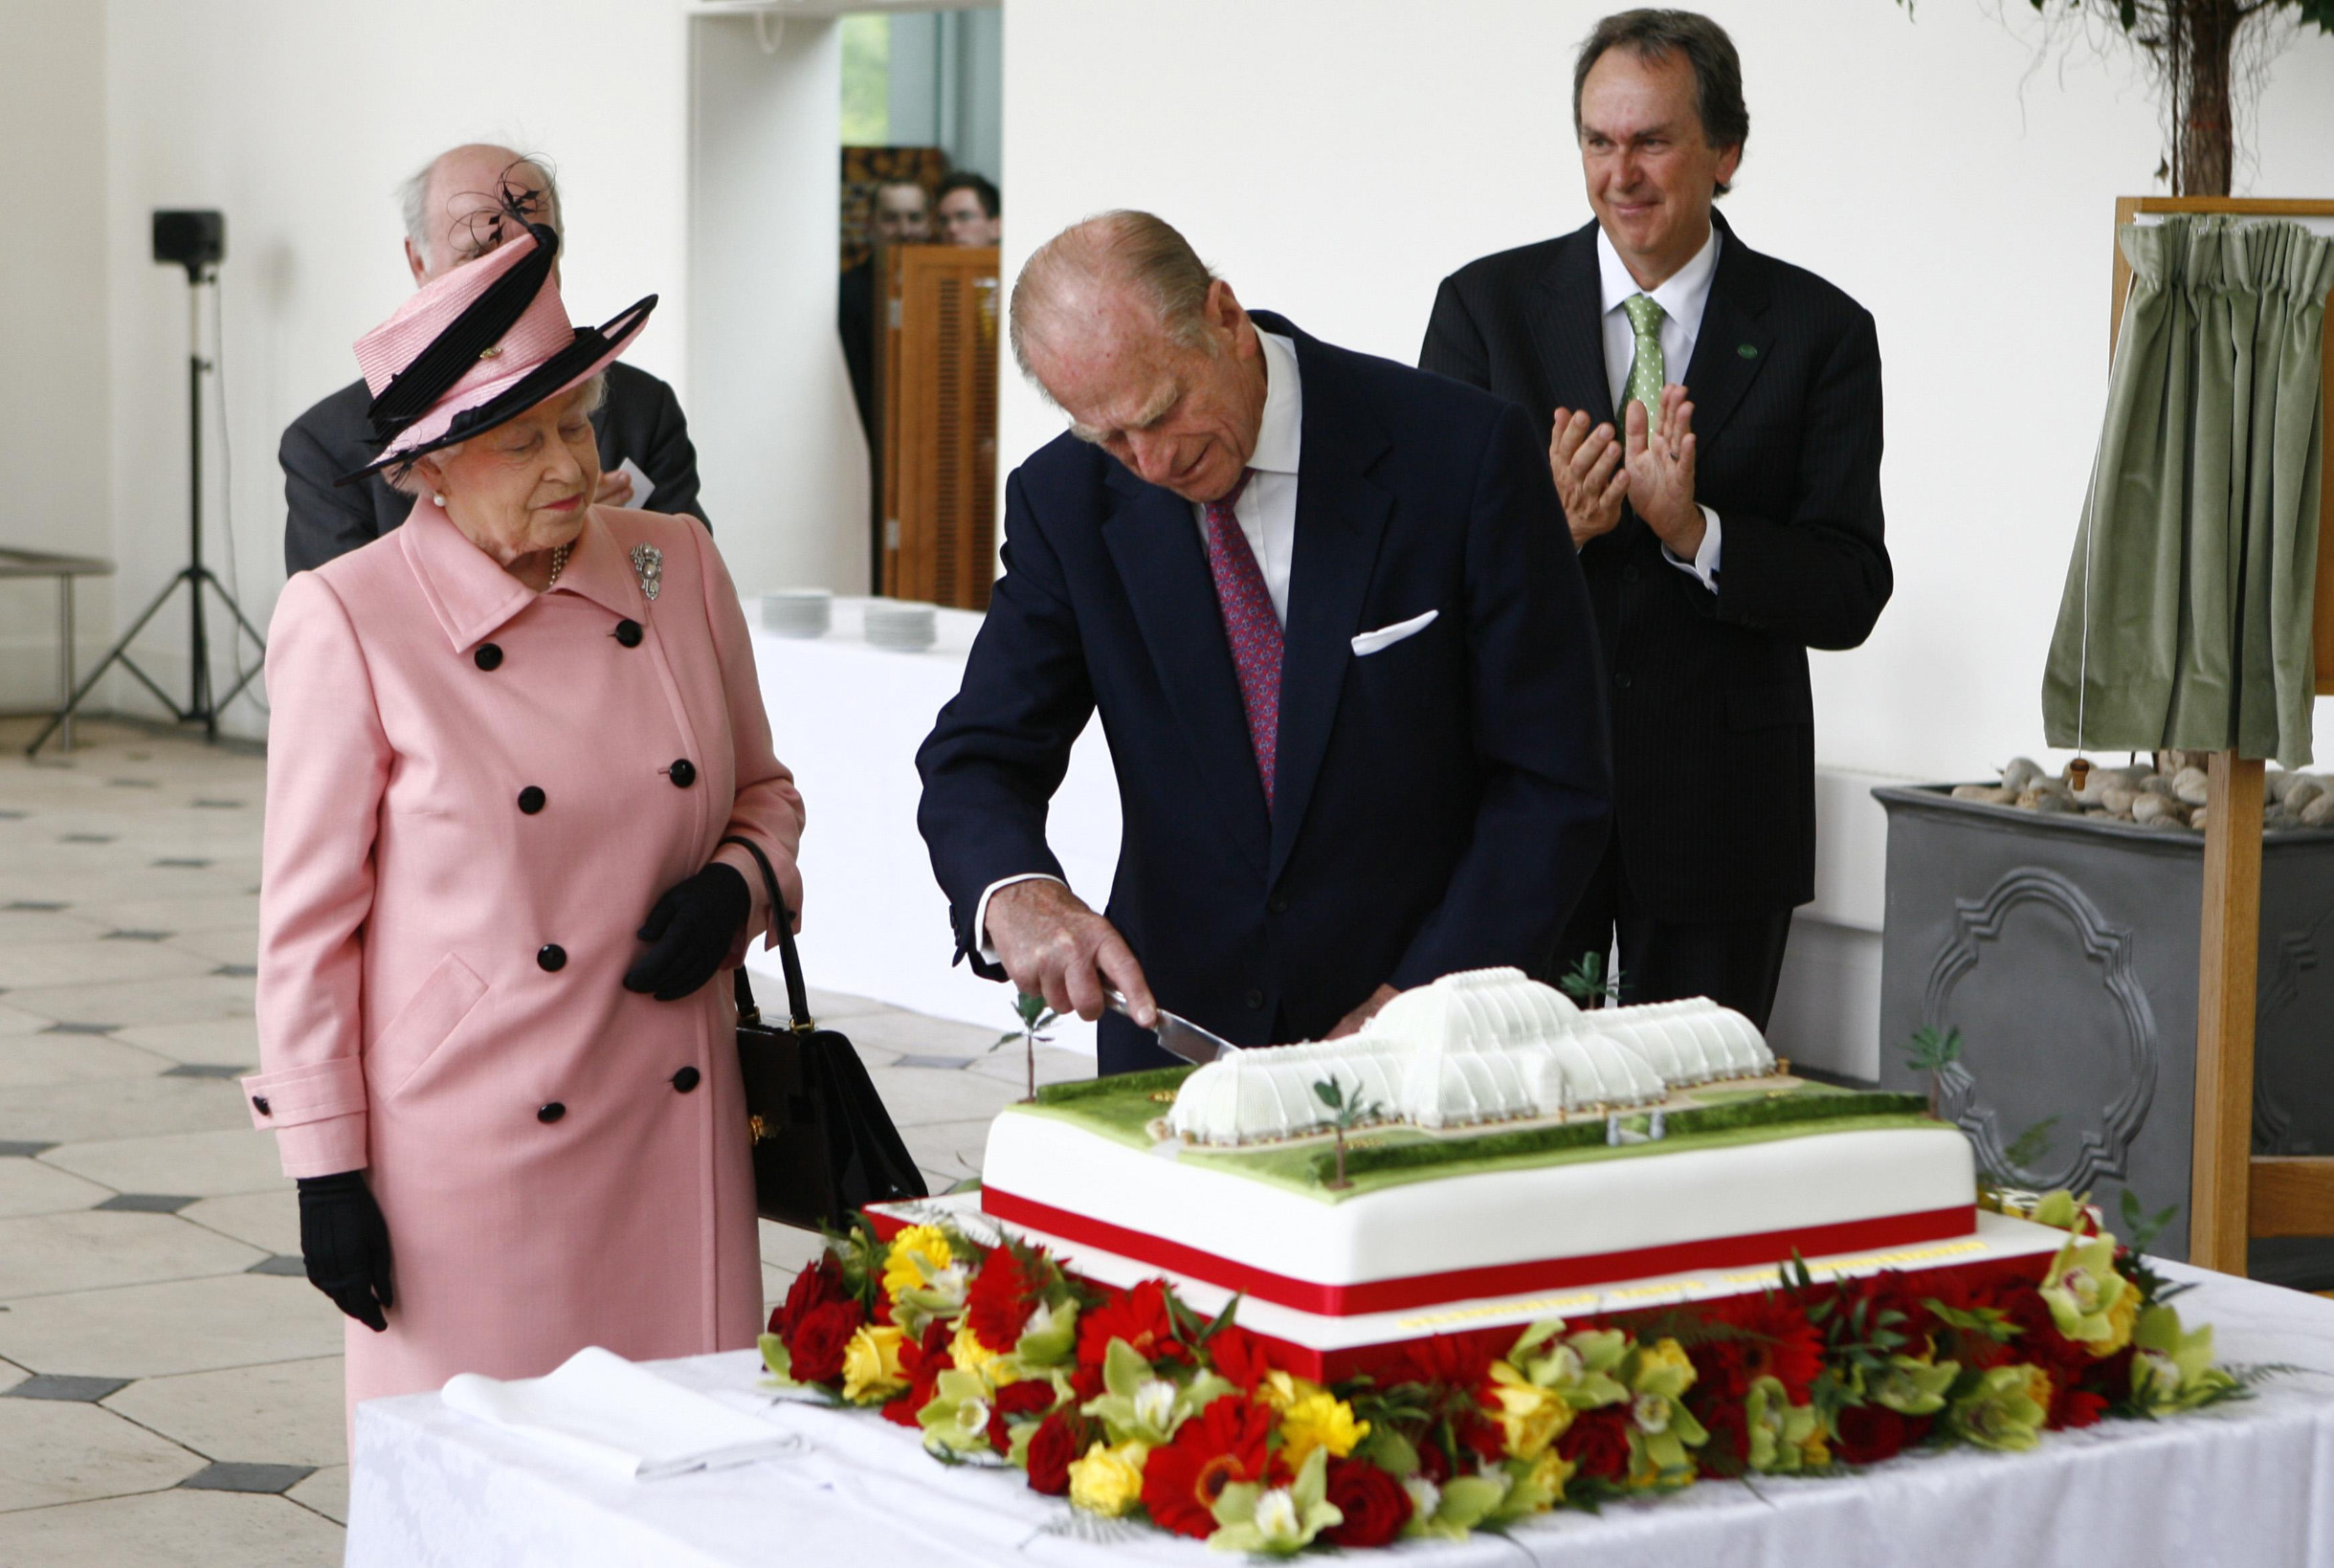 LONDON - MAY 5: Prince Philip, Duke of Edinburgh cuts a cake as Queen Elizabeth II looks on during a visit to The Royal Botanic Gardens in Kew on May 5, 2009 in London, England.  The Royal Botanic Gardens at Kew was celebrating it's 250th Anniversary.  (Photo by Johnny Green - WPA Pool/Getty Images)